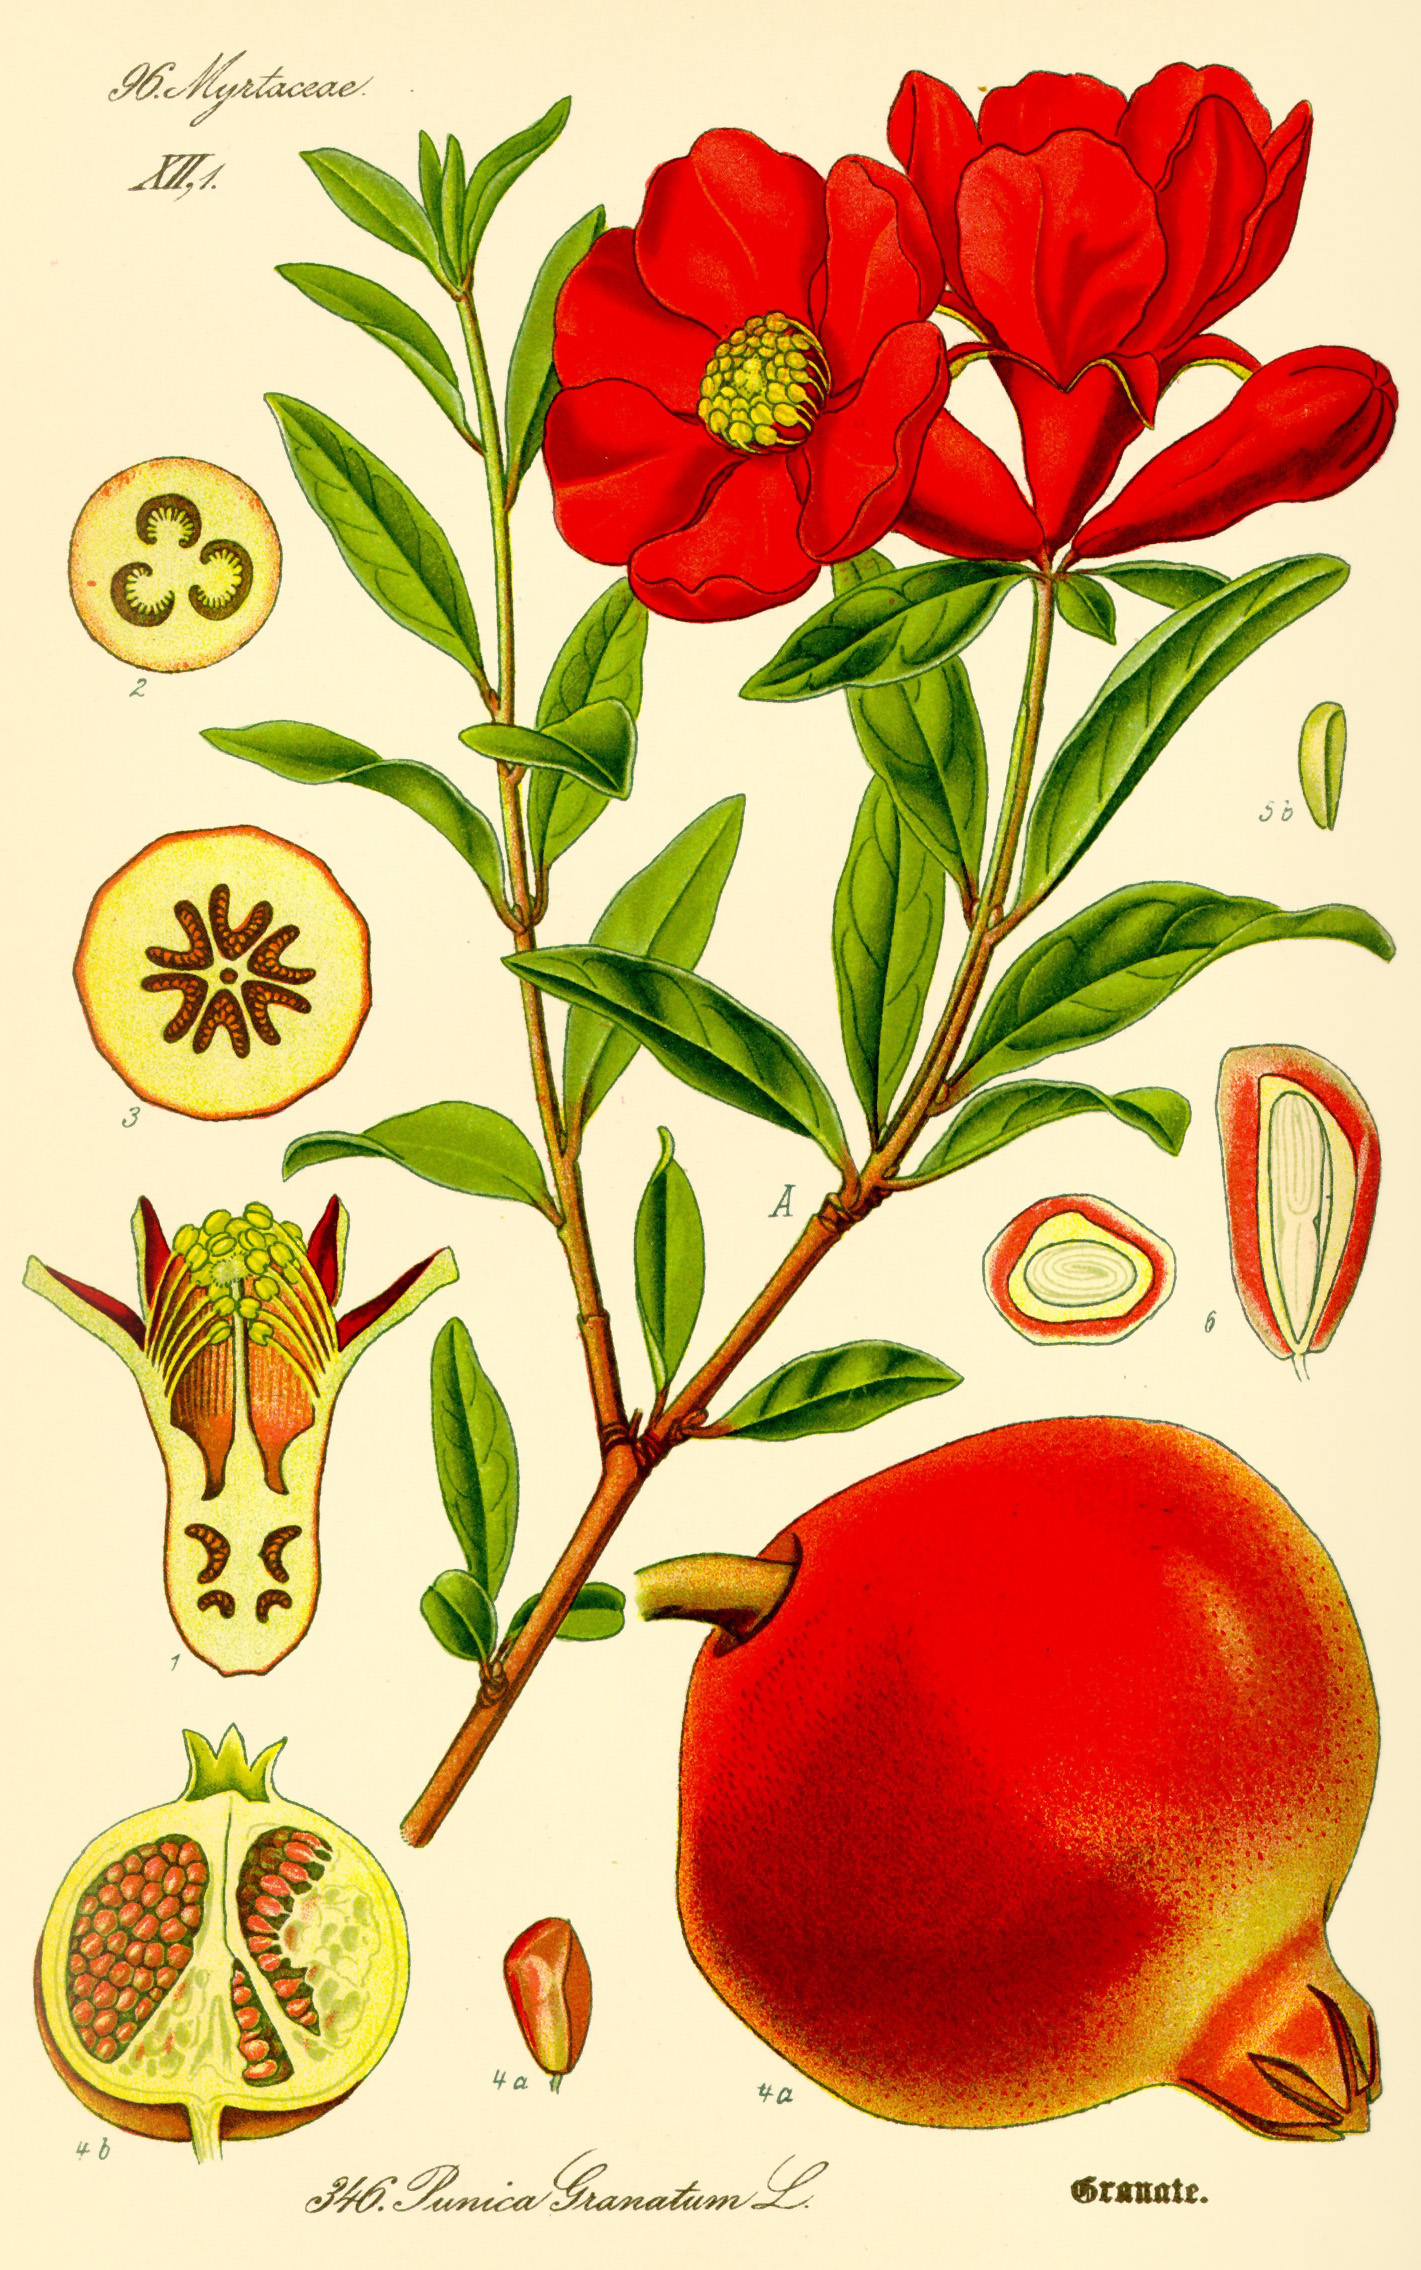 Illustration Punica granatum Granatapfel vintage